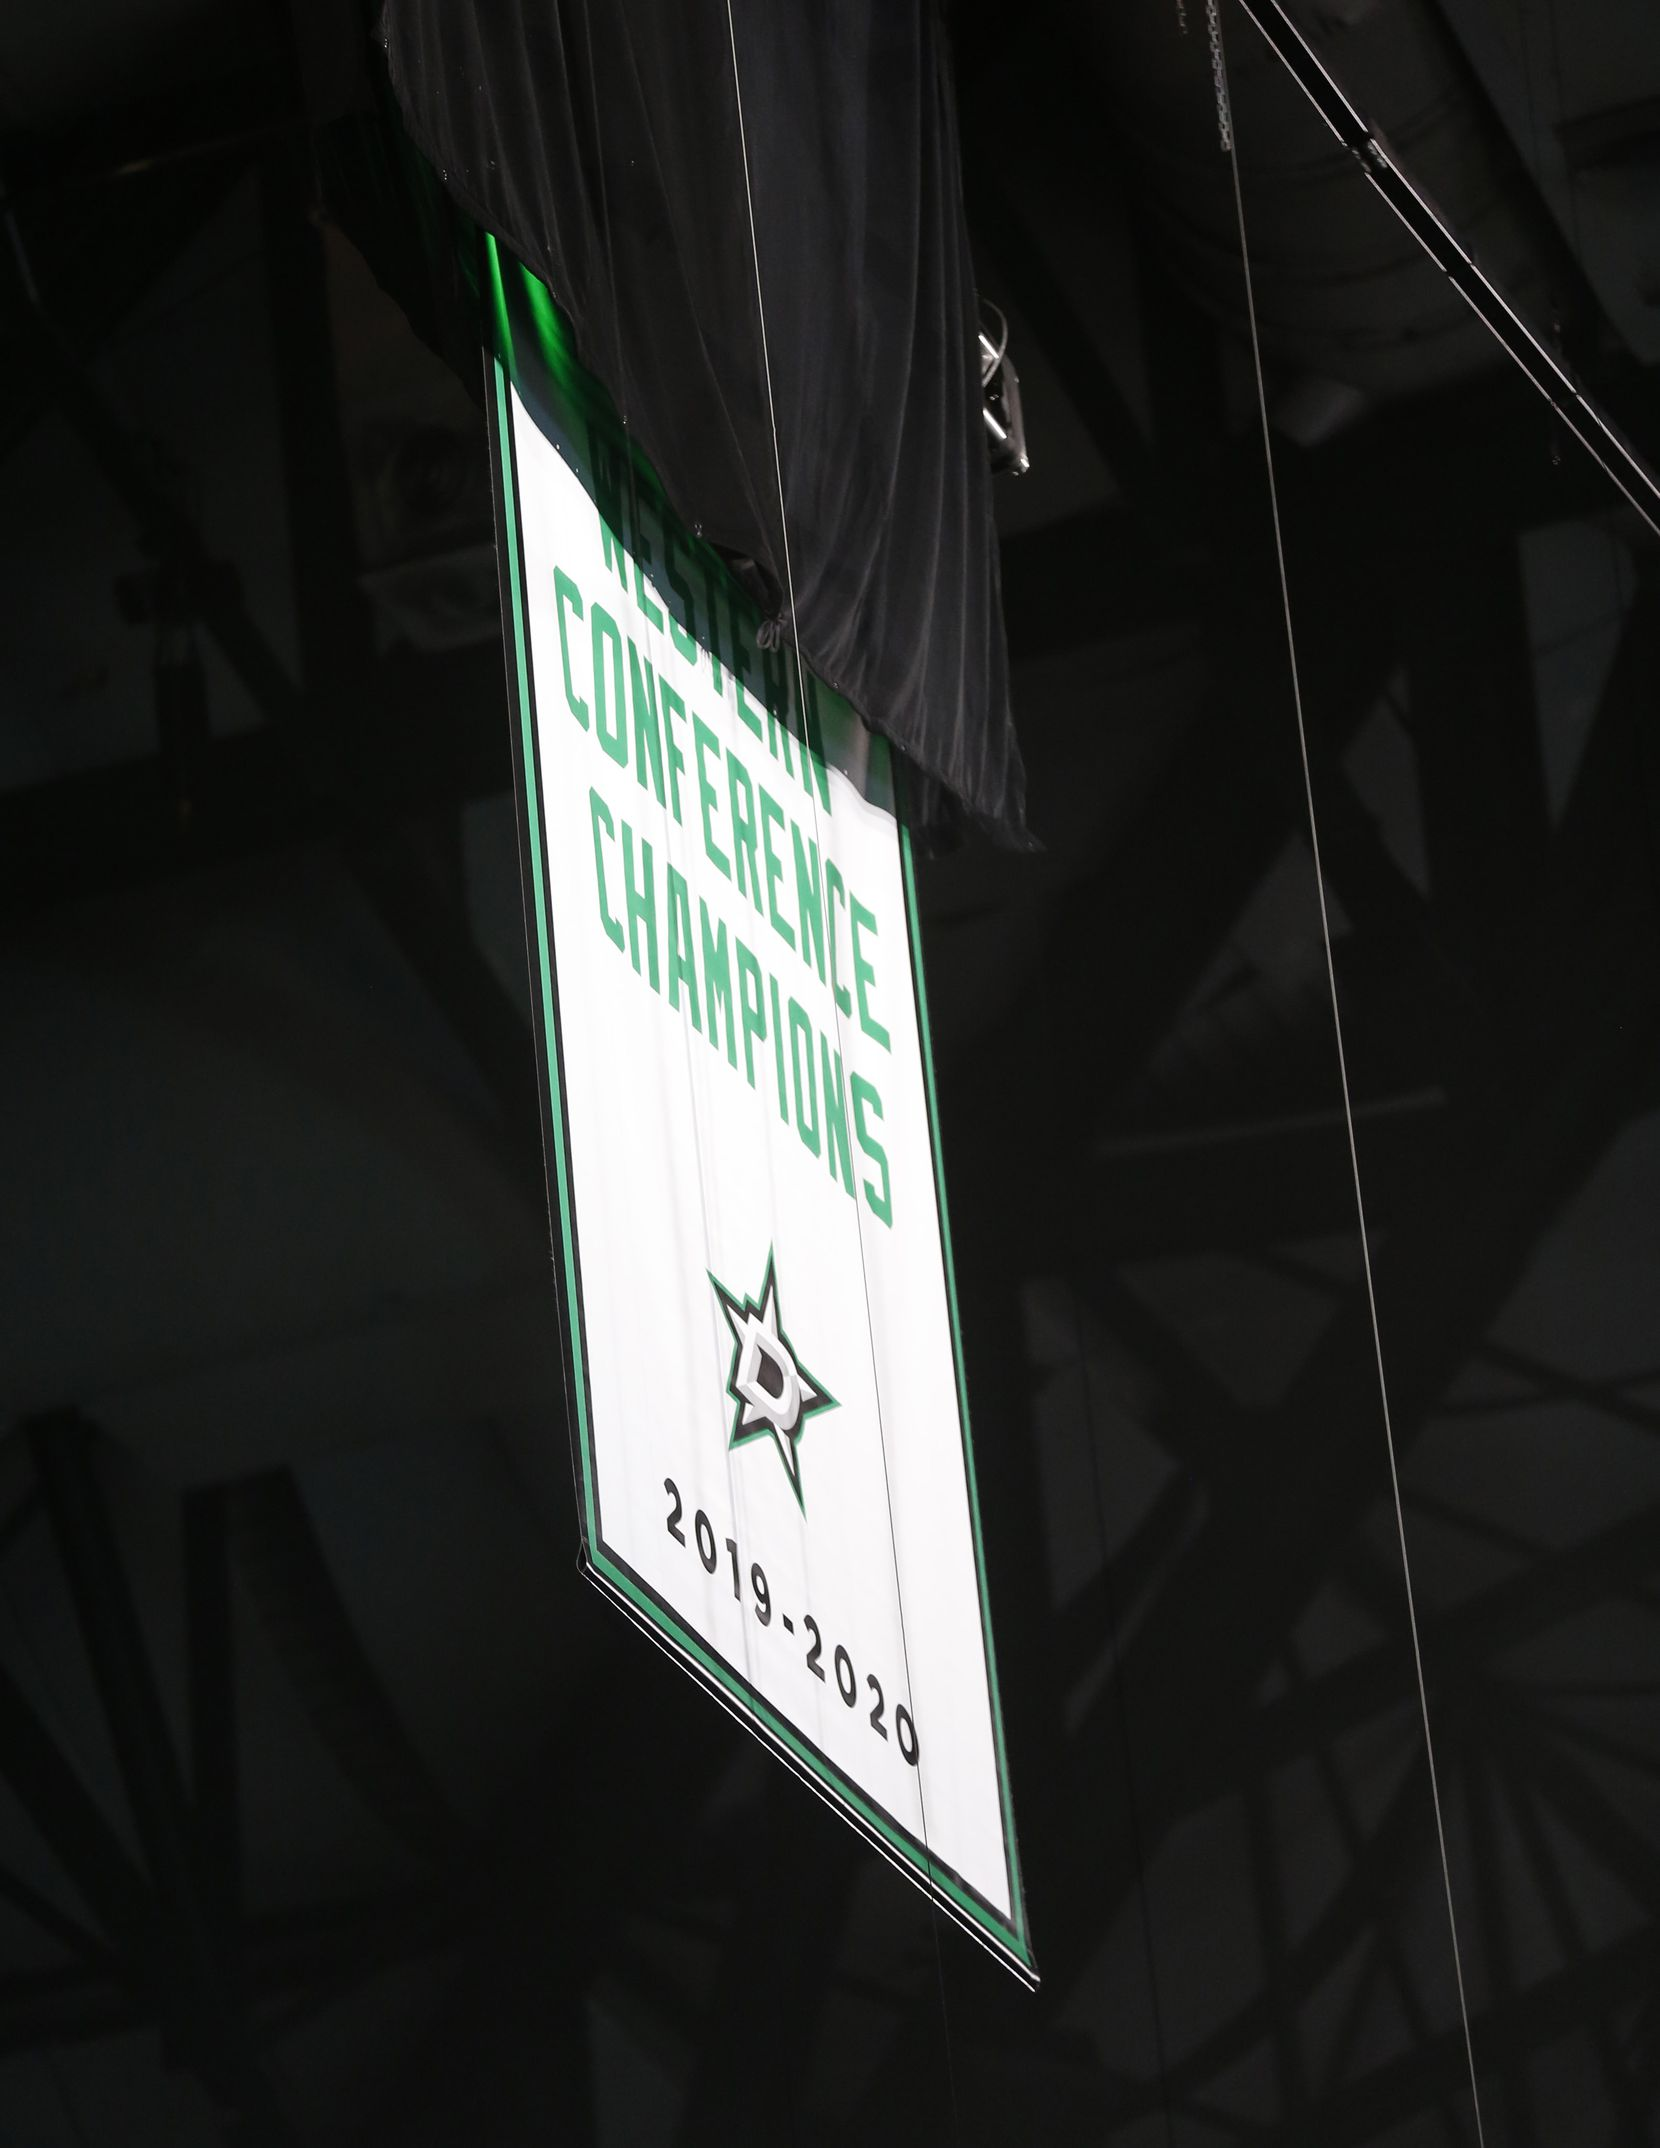 The Western Conference Champions banner is unveiled prior to the start of the game between the Dallas Stars and Nashville Predators at the home opener at American Airlines Center on Friday, January 22, 2021in Dallas. (Vernon Bryant/The Dallas Morning News)